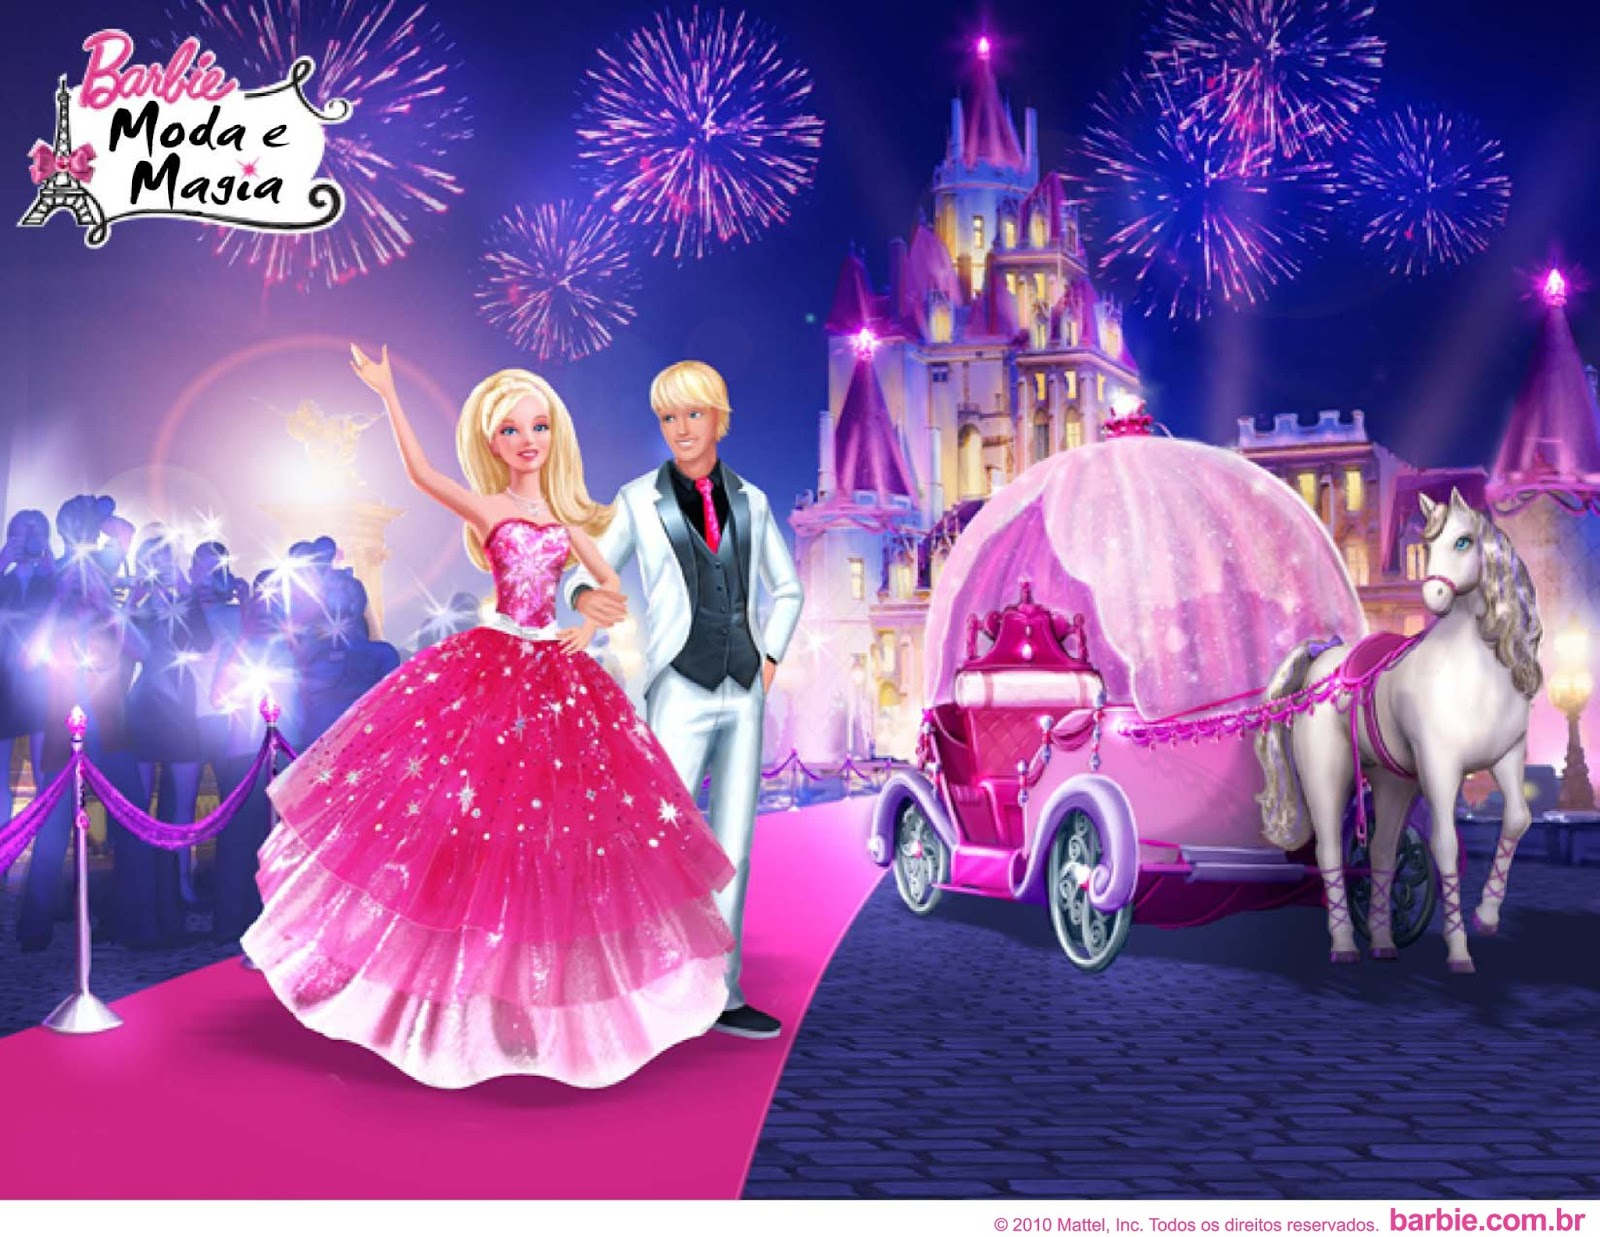 Barbie fairy fashion tale full movie 82